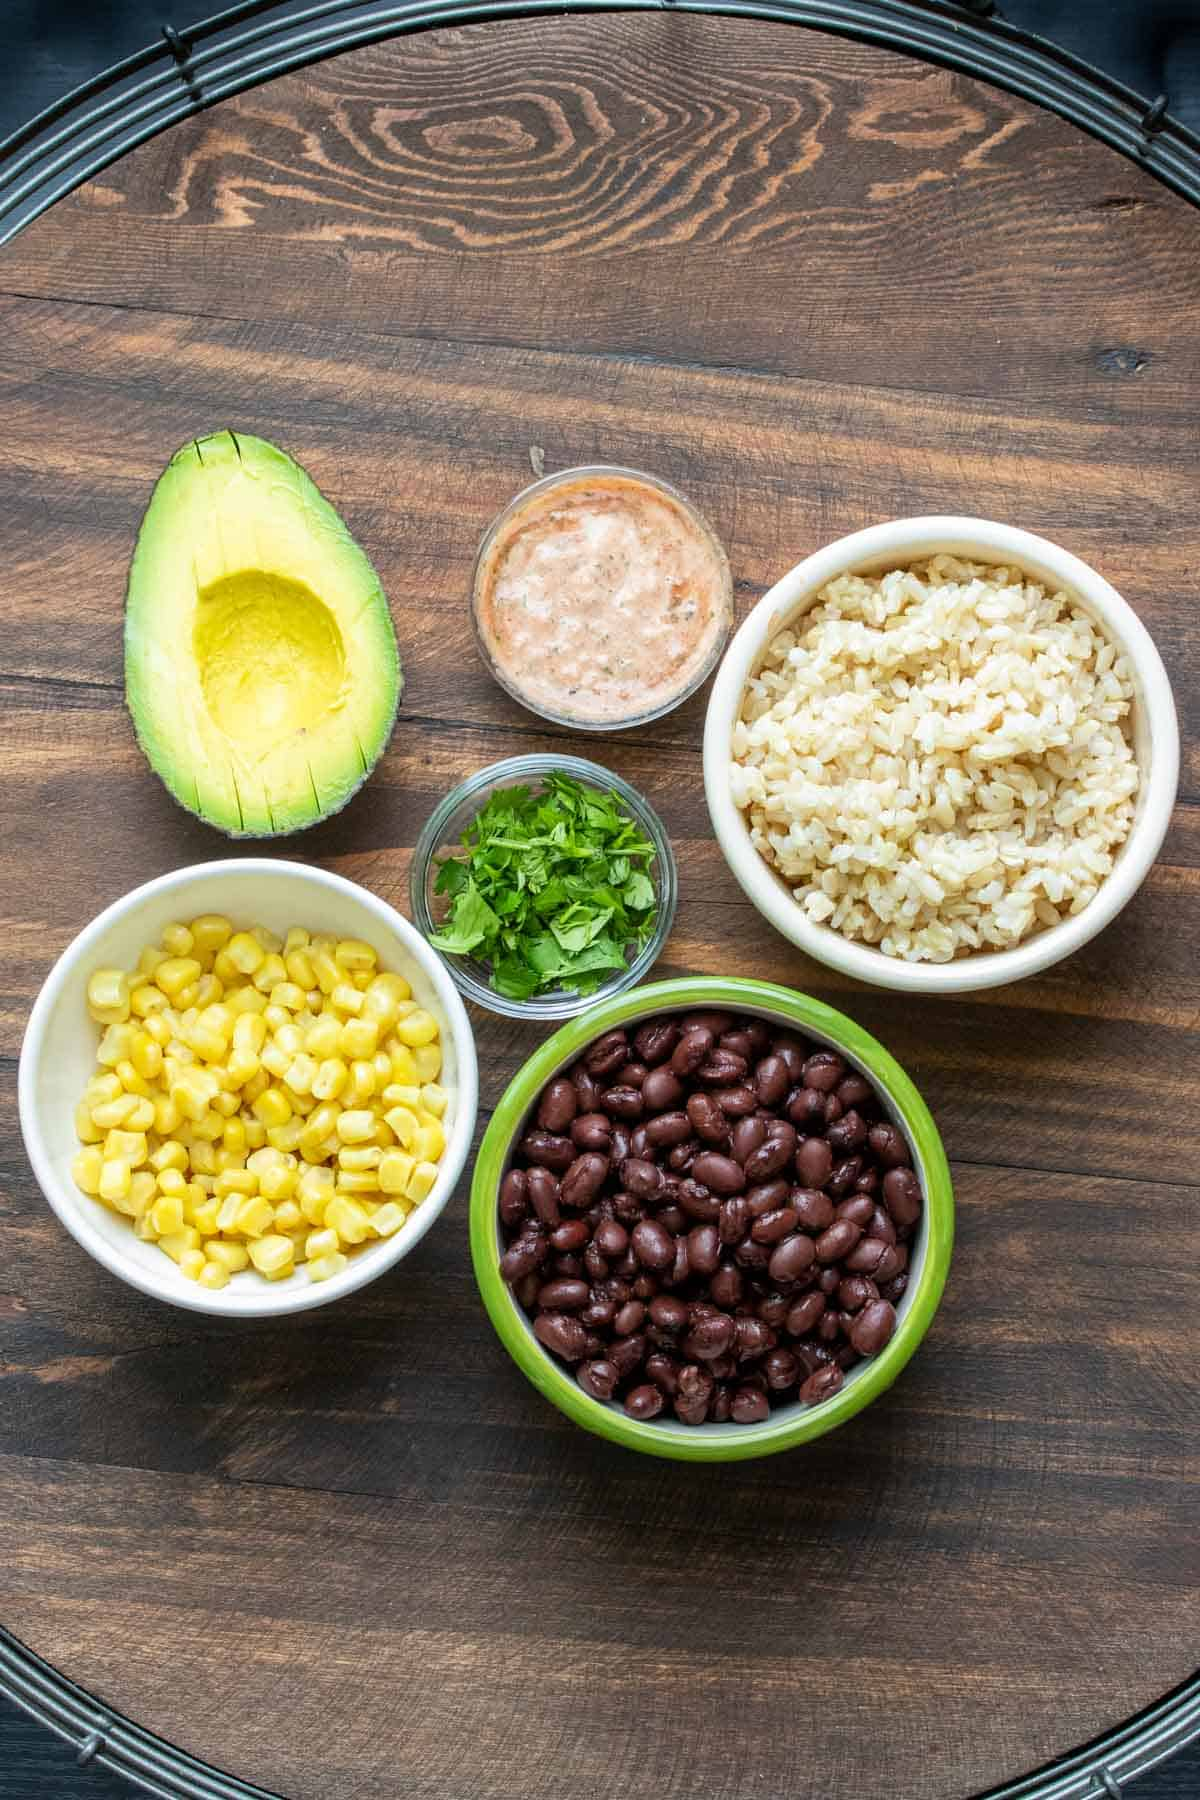 Beans, corn, rice, cilantro, creamy red sauce and half an avocado on a wooden table